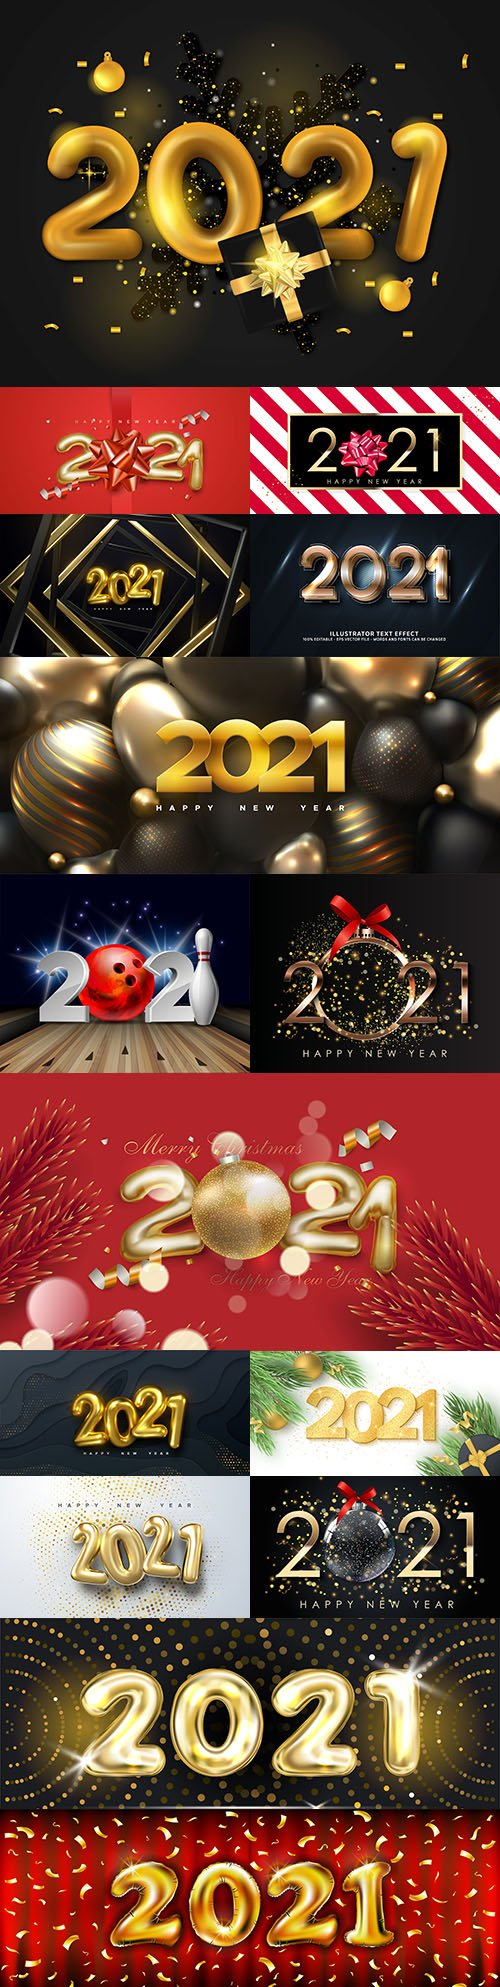 2021 New Year's illustrations Festive design inscription 5